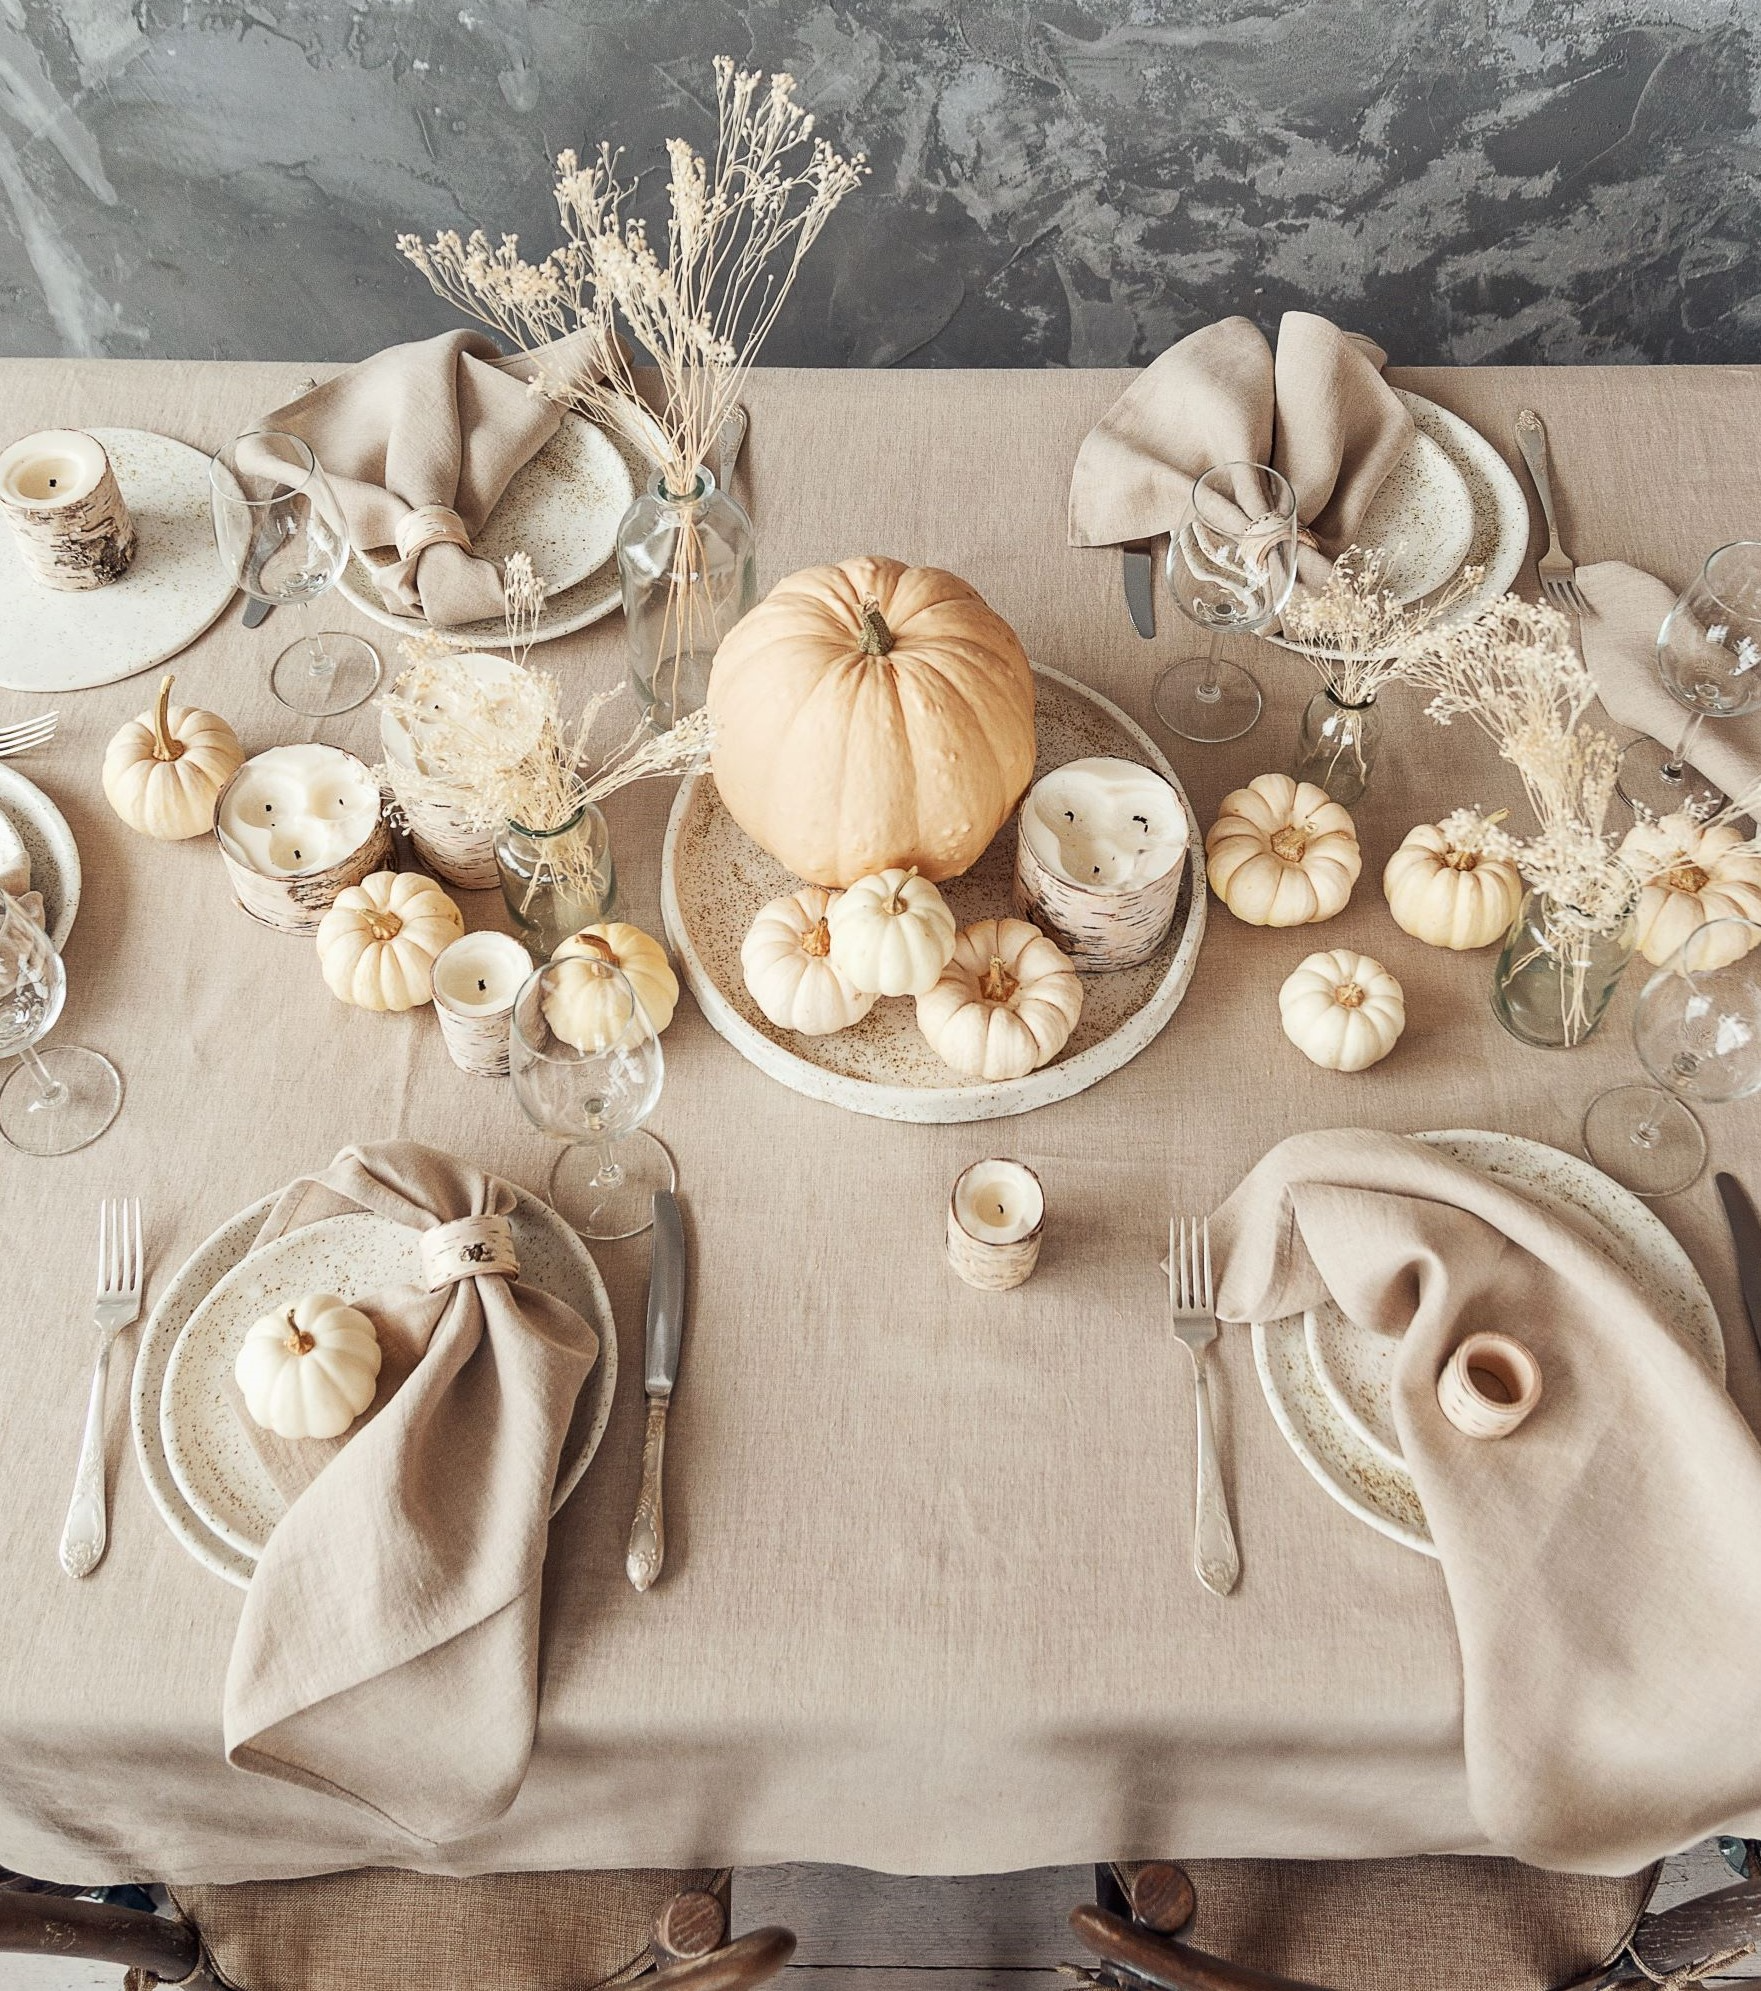 Rustic Thanksgiving table with pumpkin centerpiece.